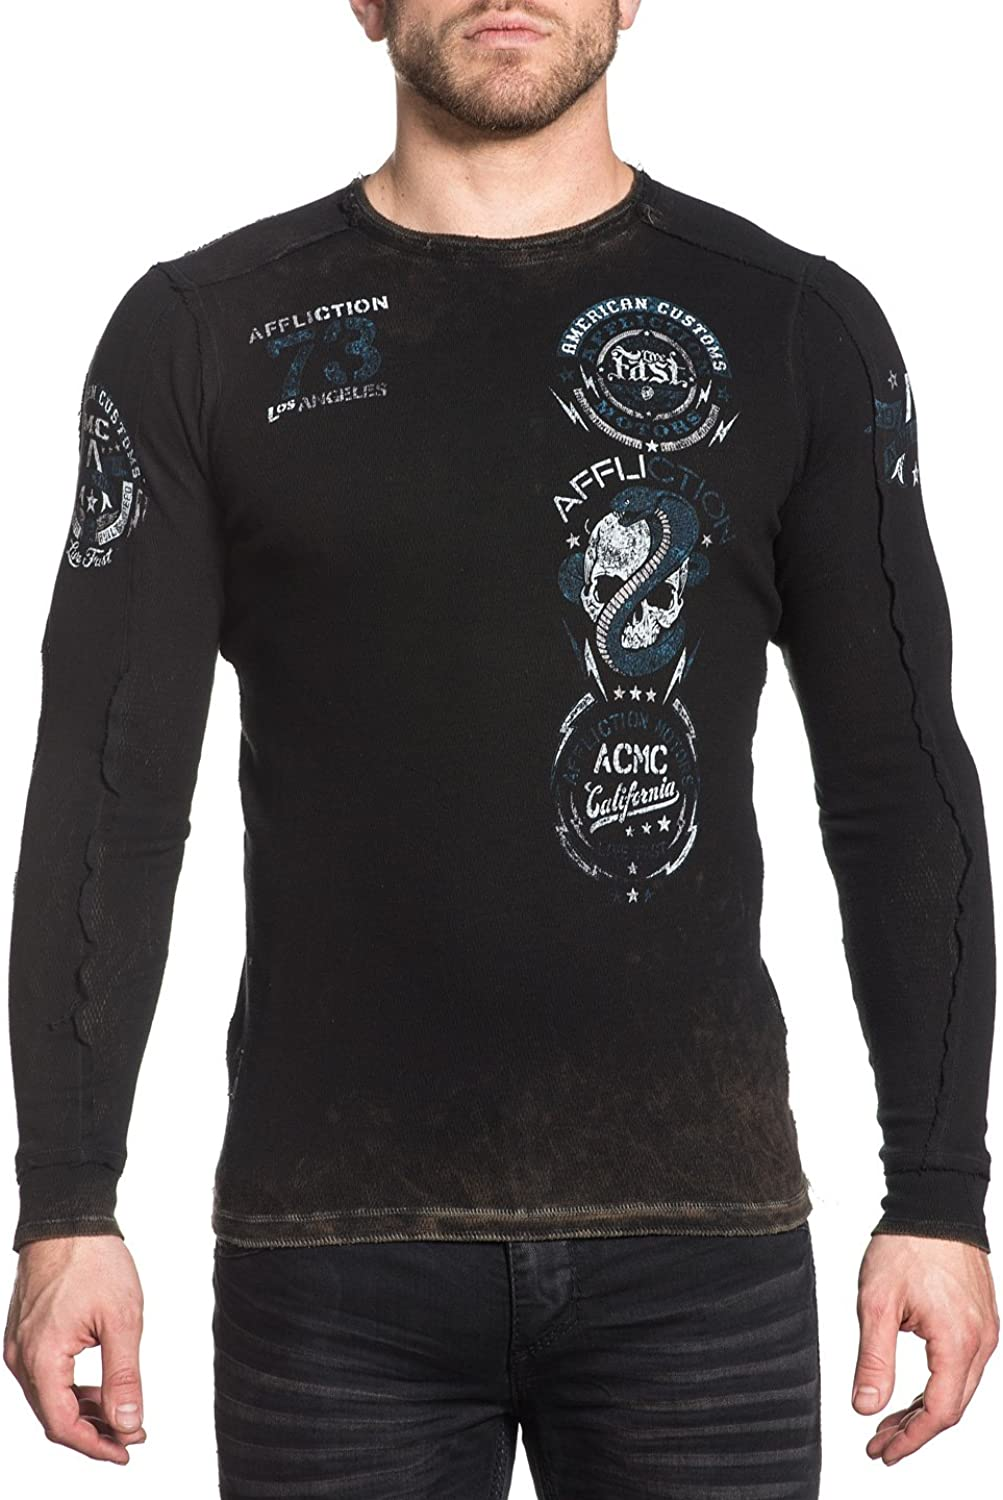 Affliction Mens Long Sleeve Reversible Graphic Thermal TShirt